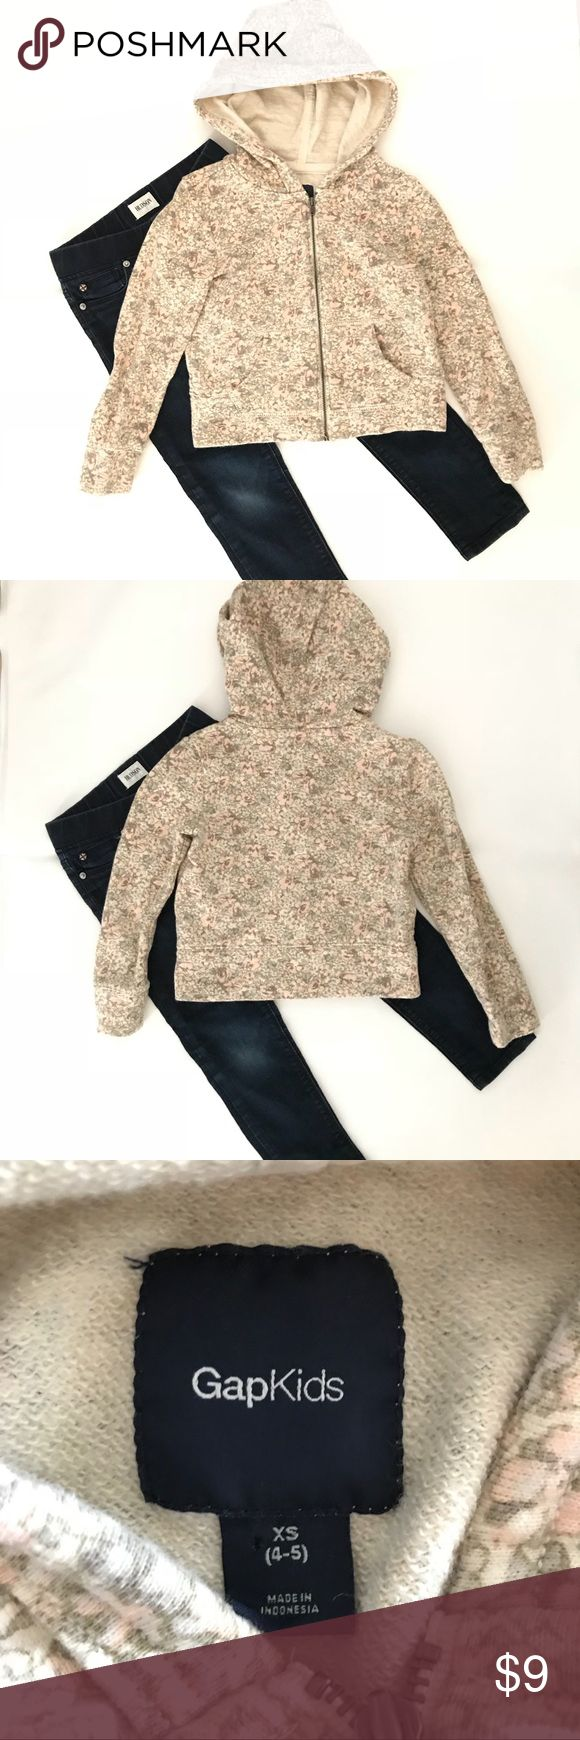 Gap floral zip up hoodie sz 4-5 like new •Gap floral zip down sweatshirt with hoodie  •Like new condition   •Free matching headband for every purchased item  •Comes from smoke free, pet free home  •This listing is for the sweatshirt only. Jeans not included. GAP Shirts & Tops Sweatshirts & Hoodies